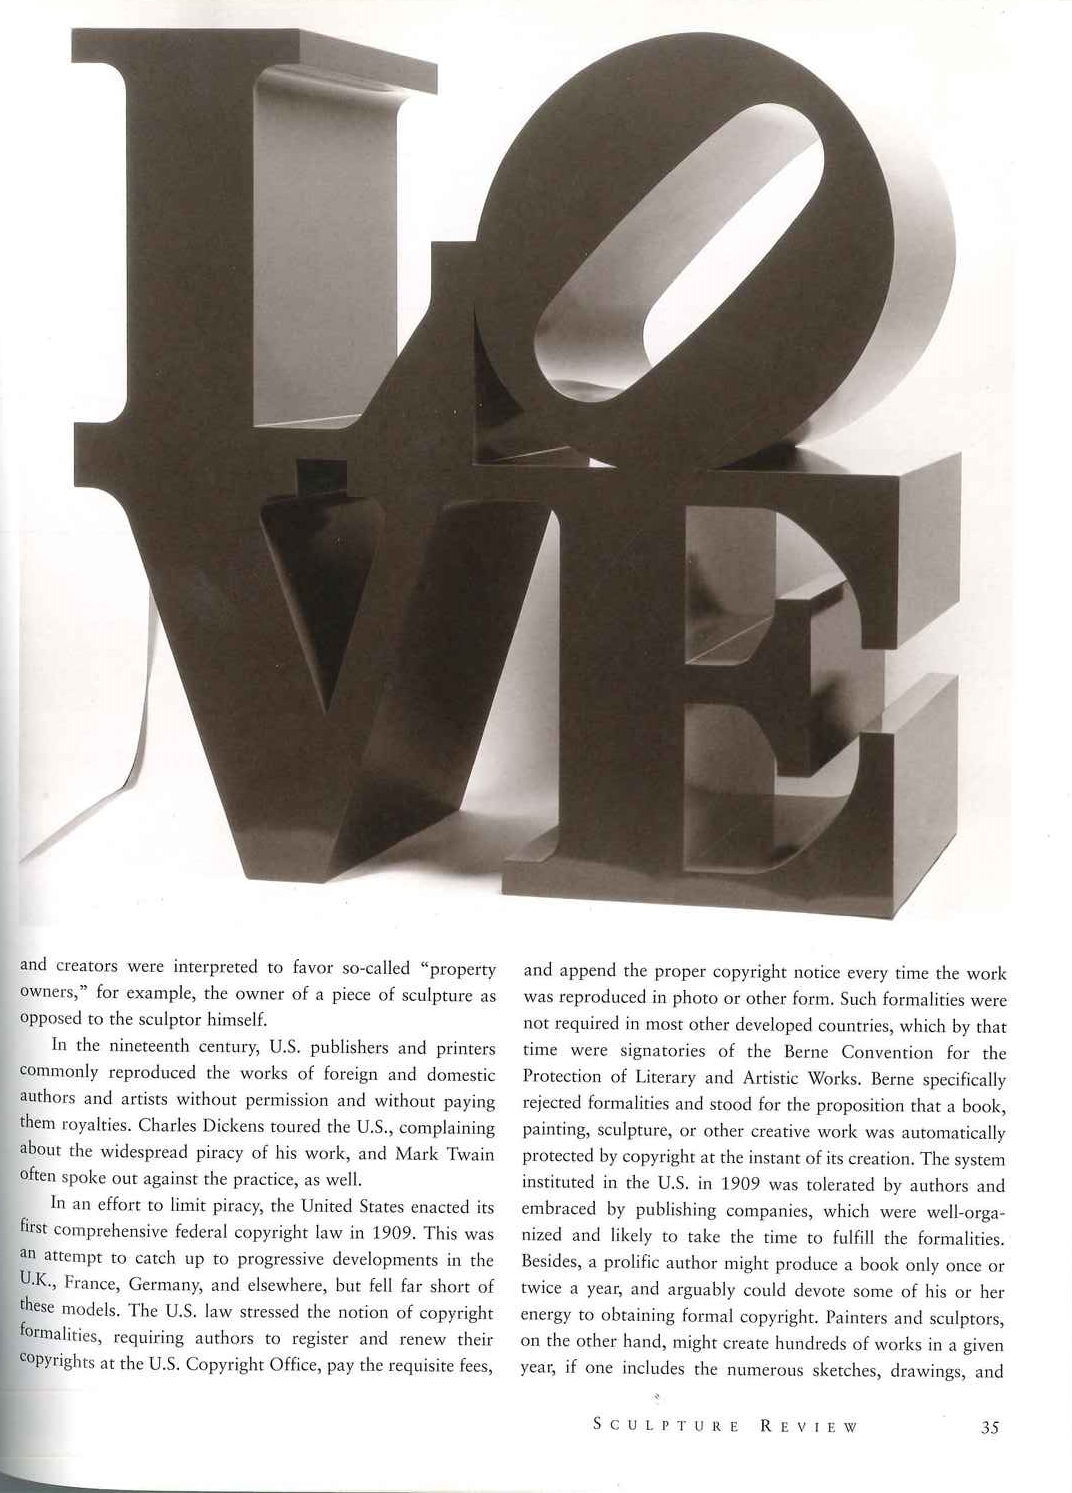 sculpture review_Page_2.jpg